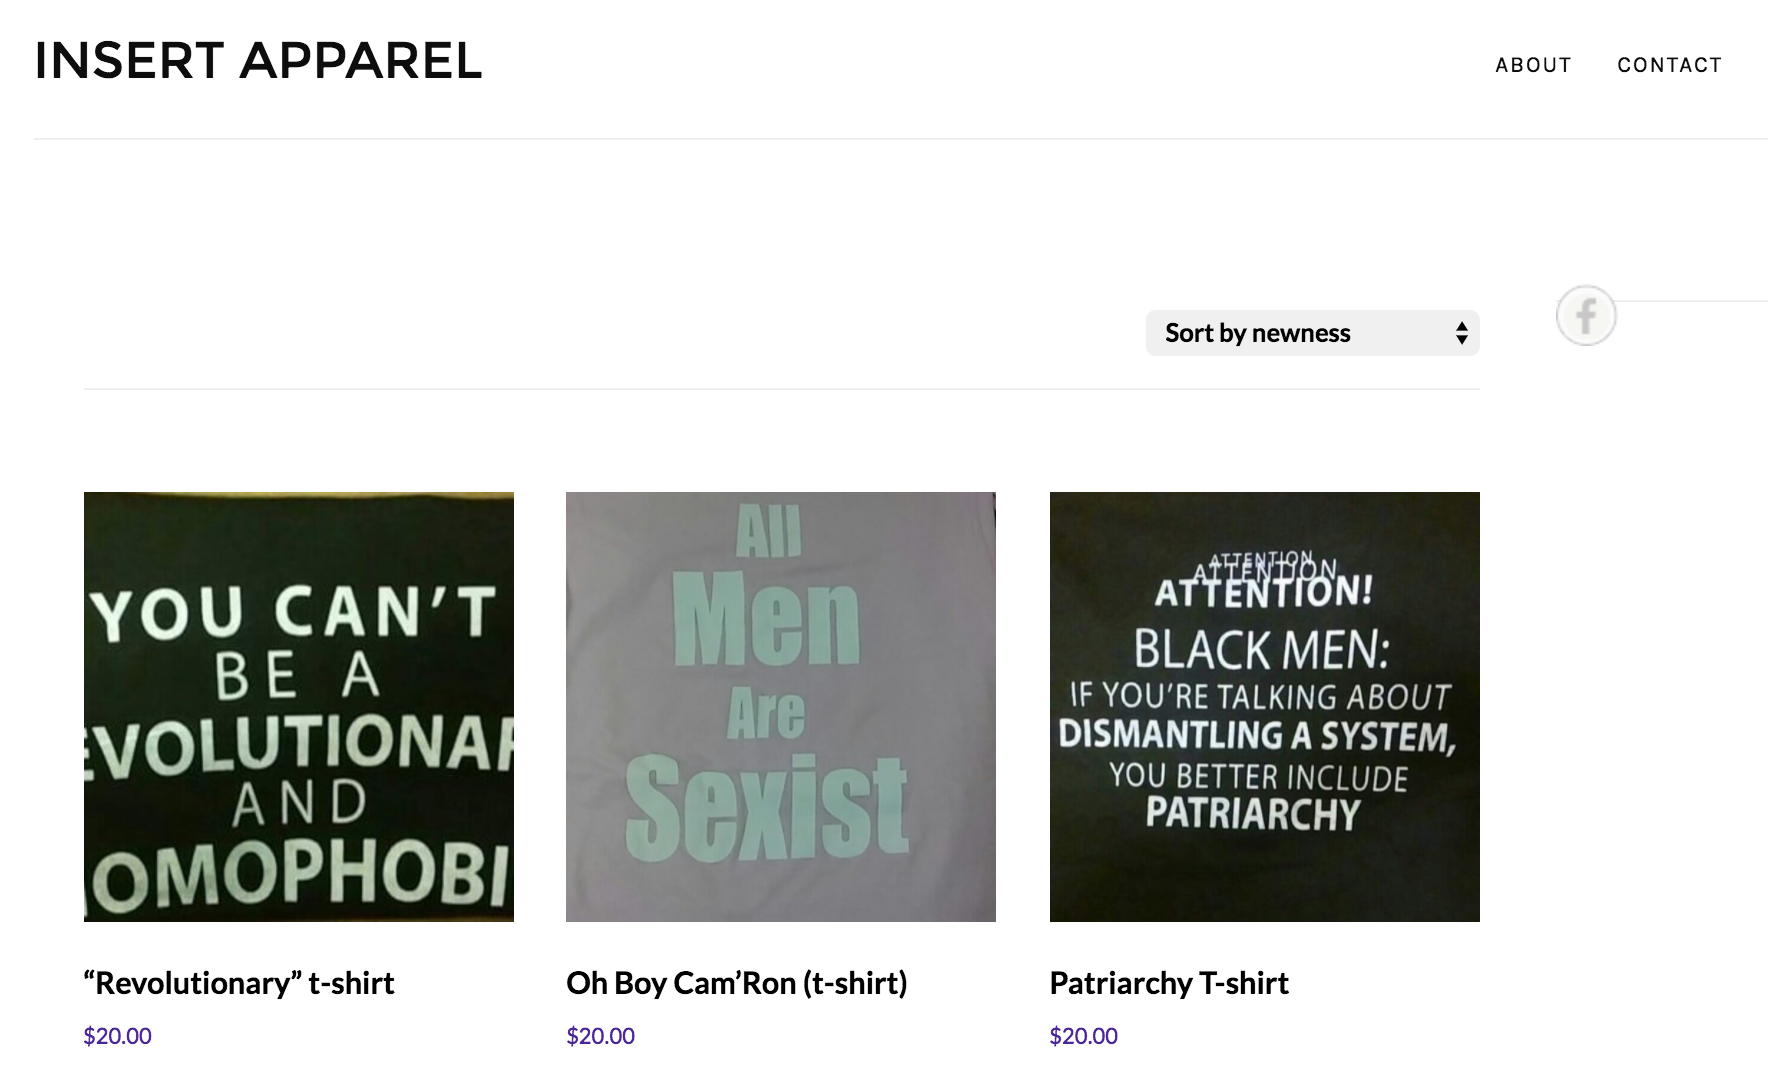 UW student's controversial clothing line prompts national attention, death threats